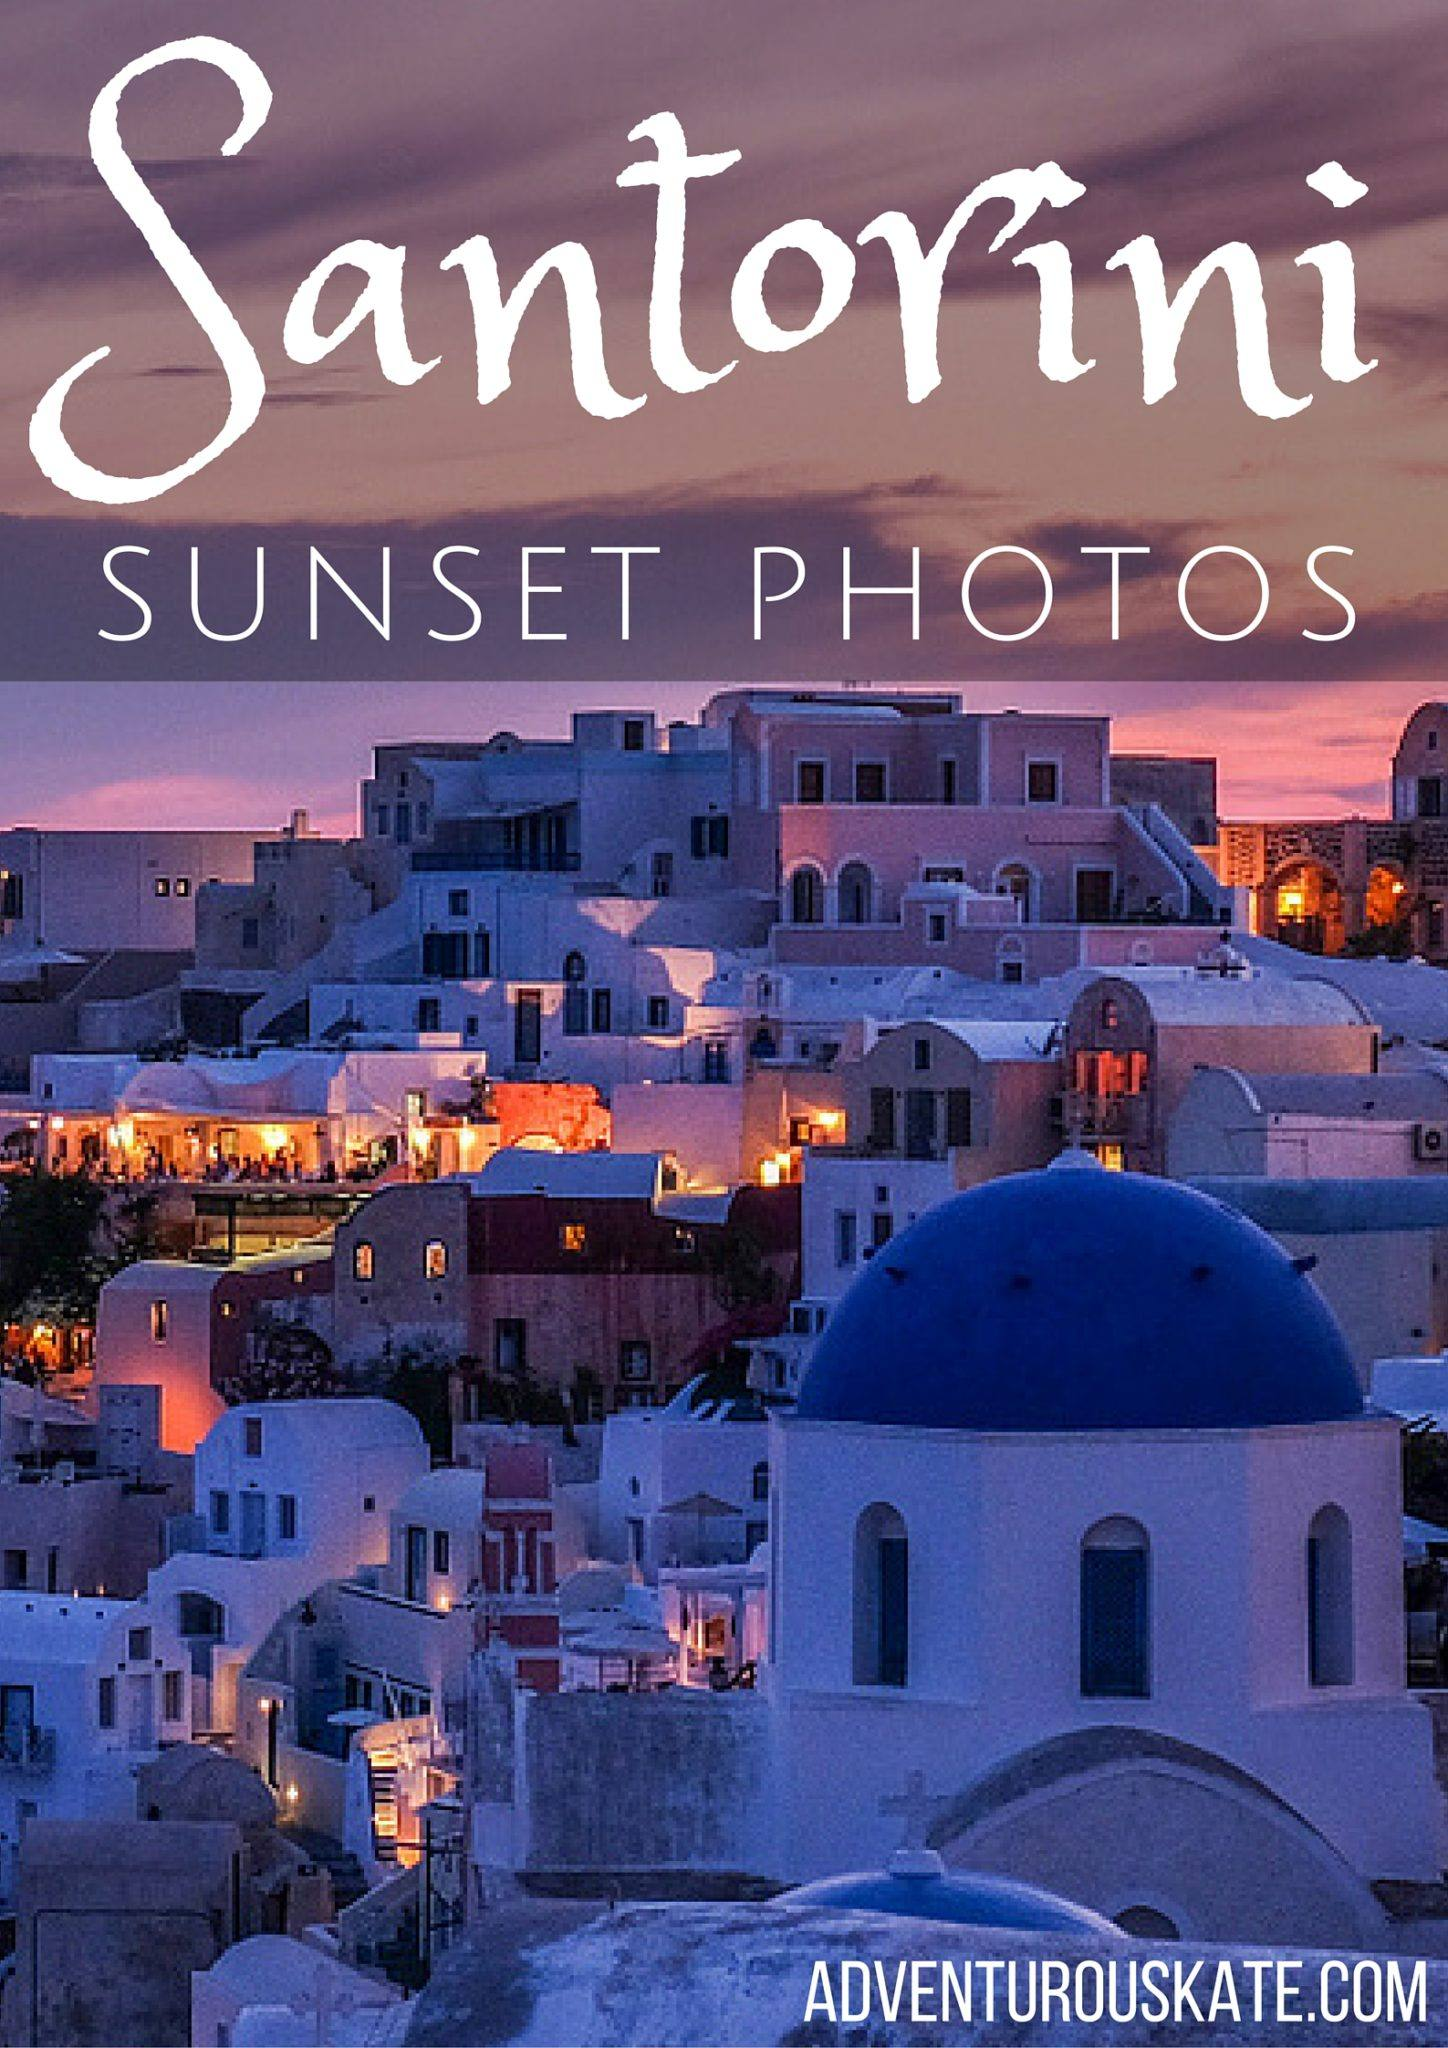 Santorini Sunset Photos